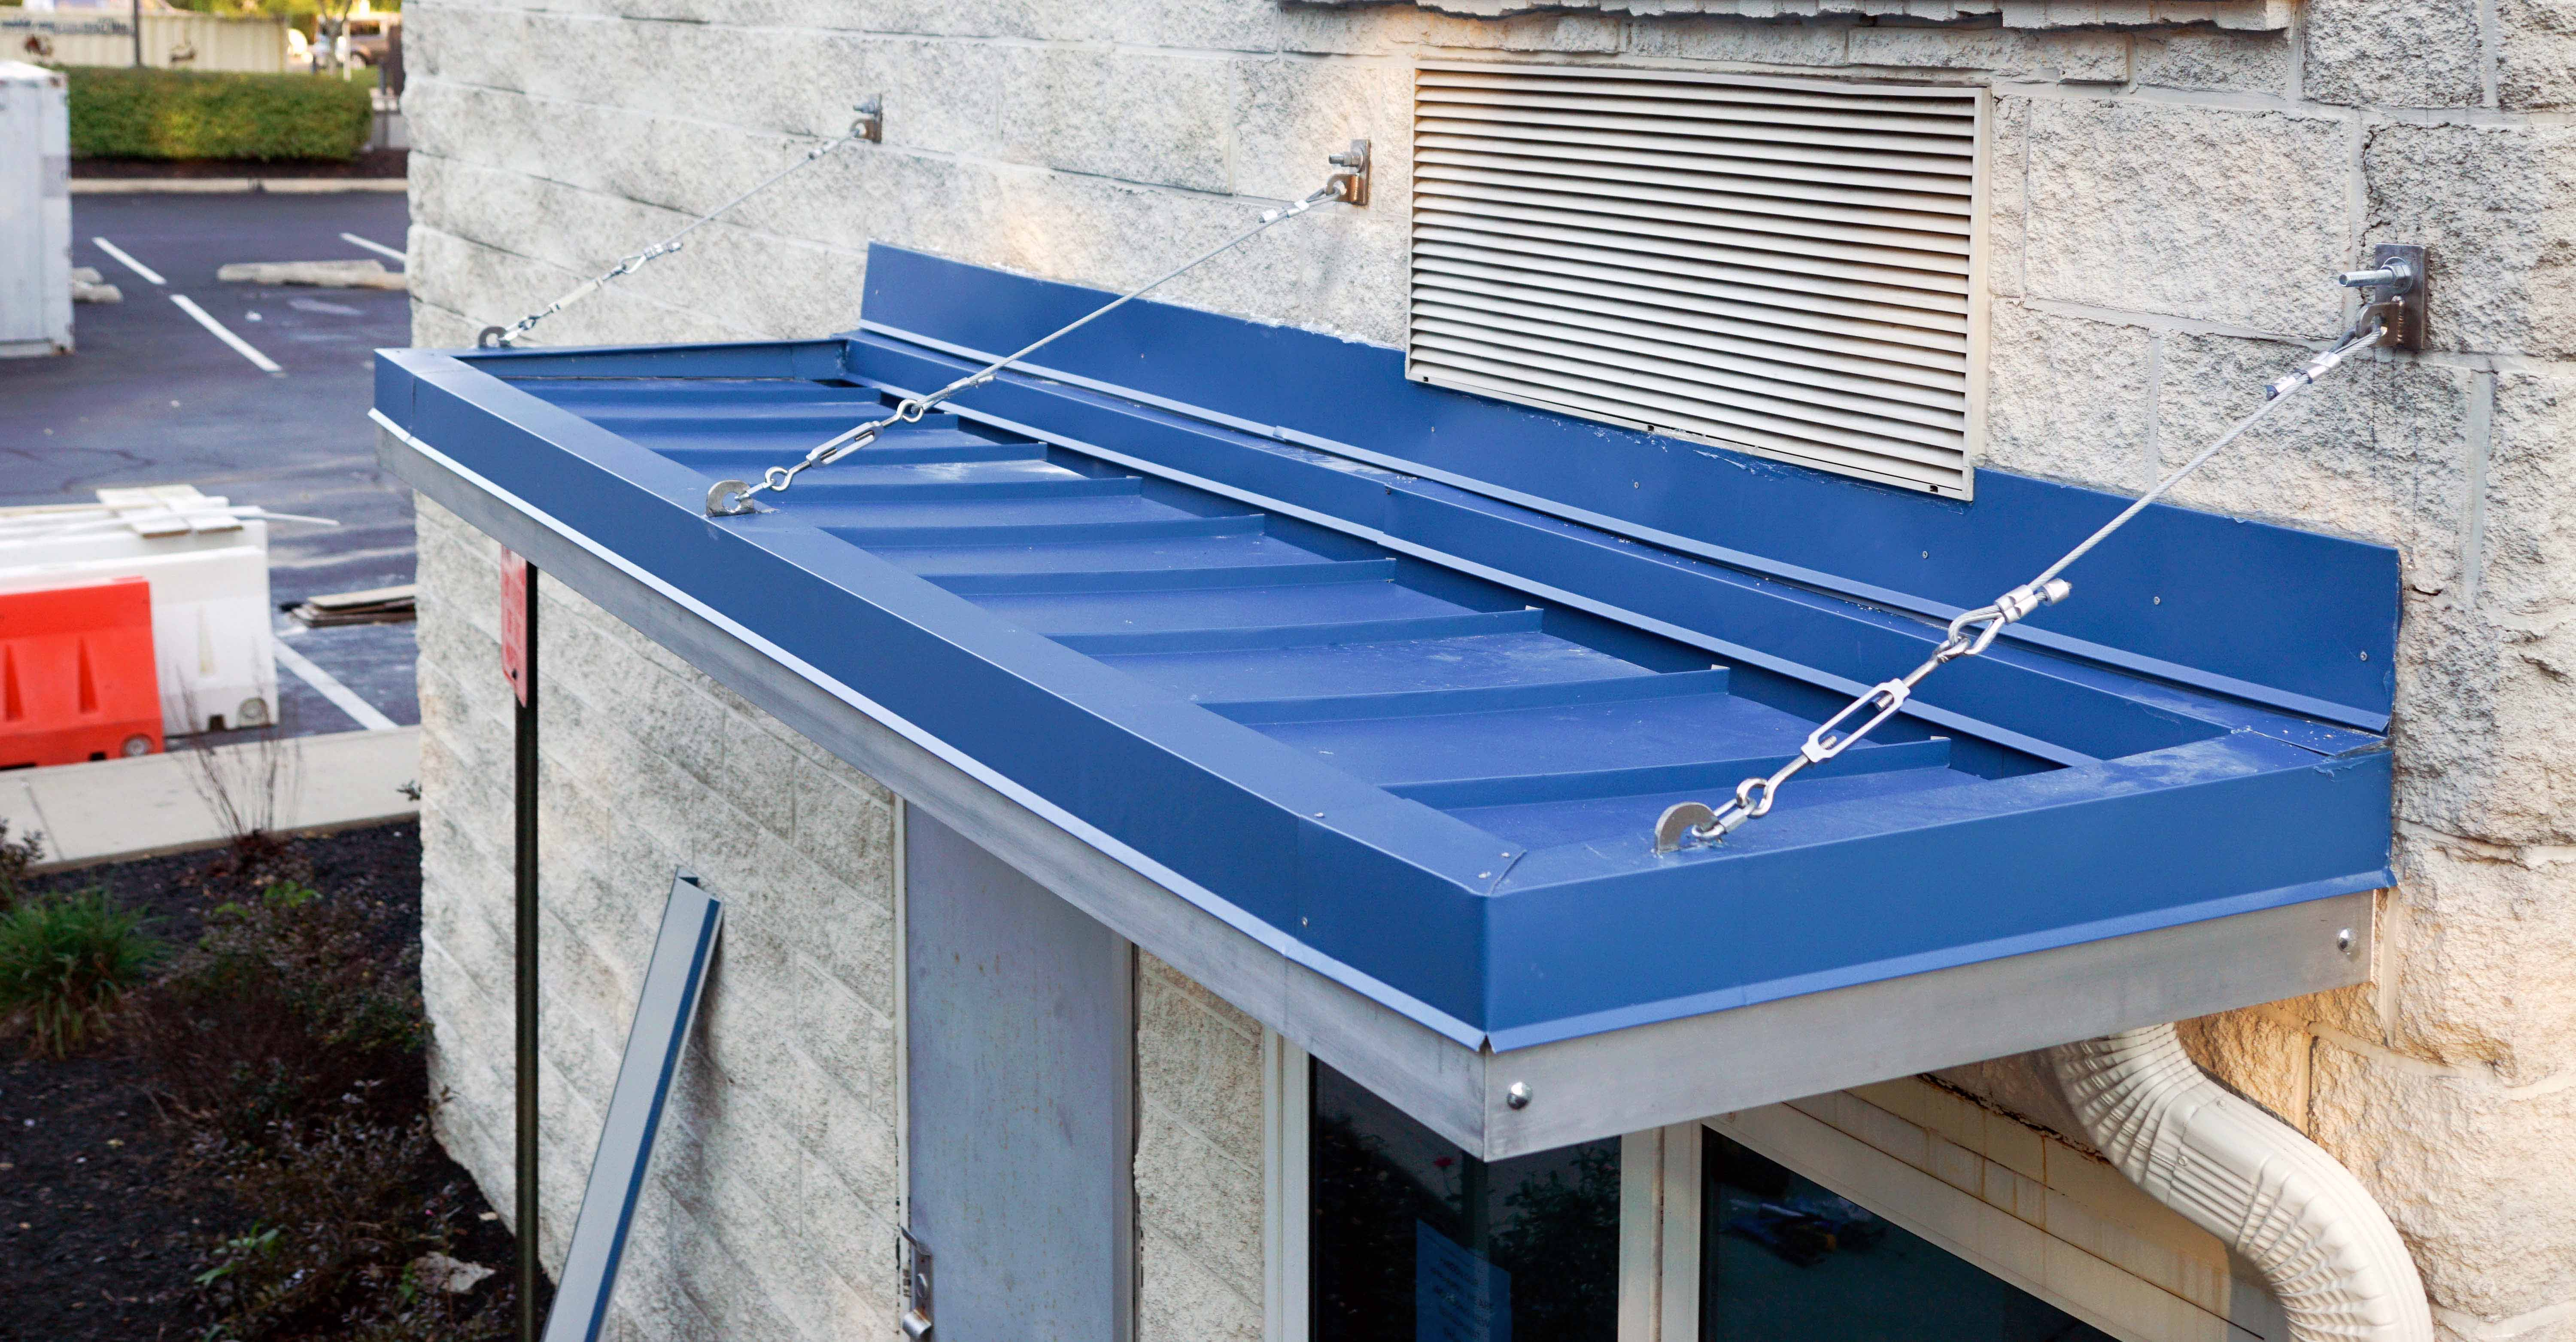 Metal Canopy with Standing Seam Roof & Metal Canopy with Standing Seam Roof - Bensalem Metal